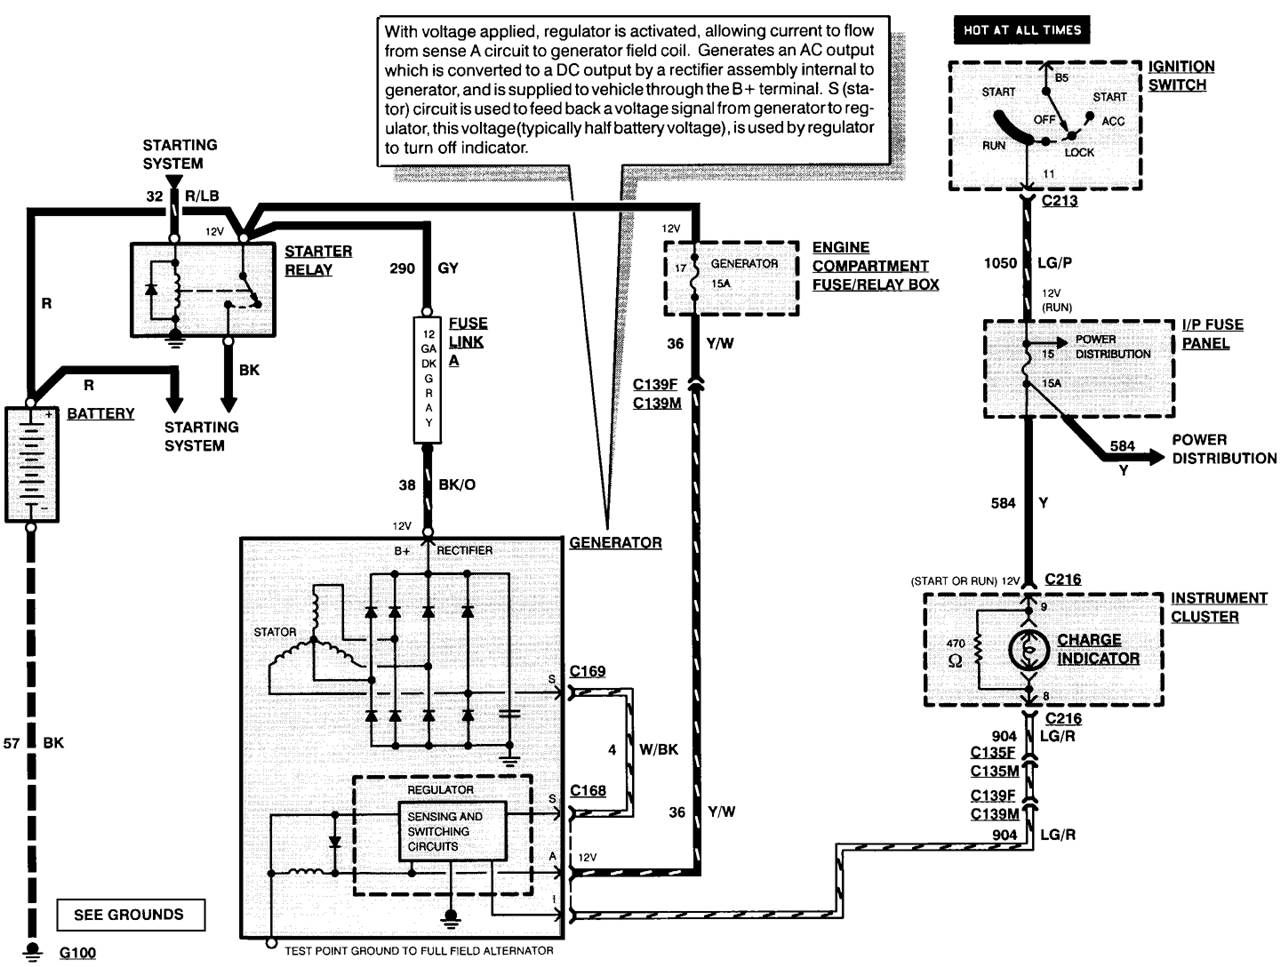 Ford alternator wiring diagram internal regulator alternator wiring diagram alternator wiring diagrams instruction e36 alternator wiring diagram at gsmportal.co